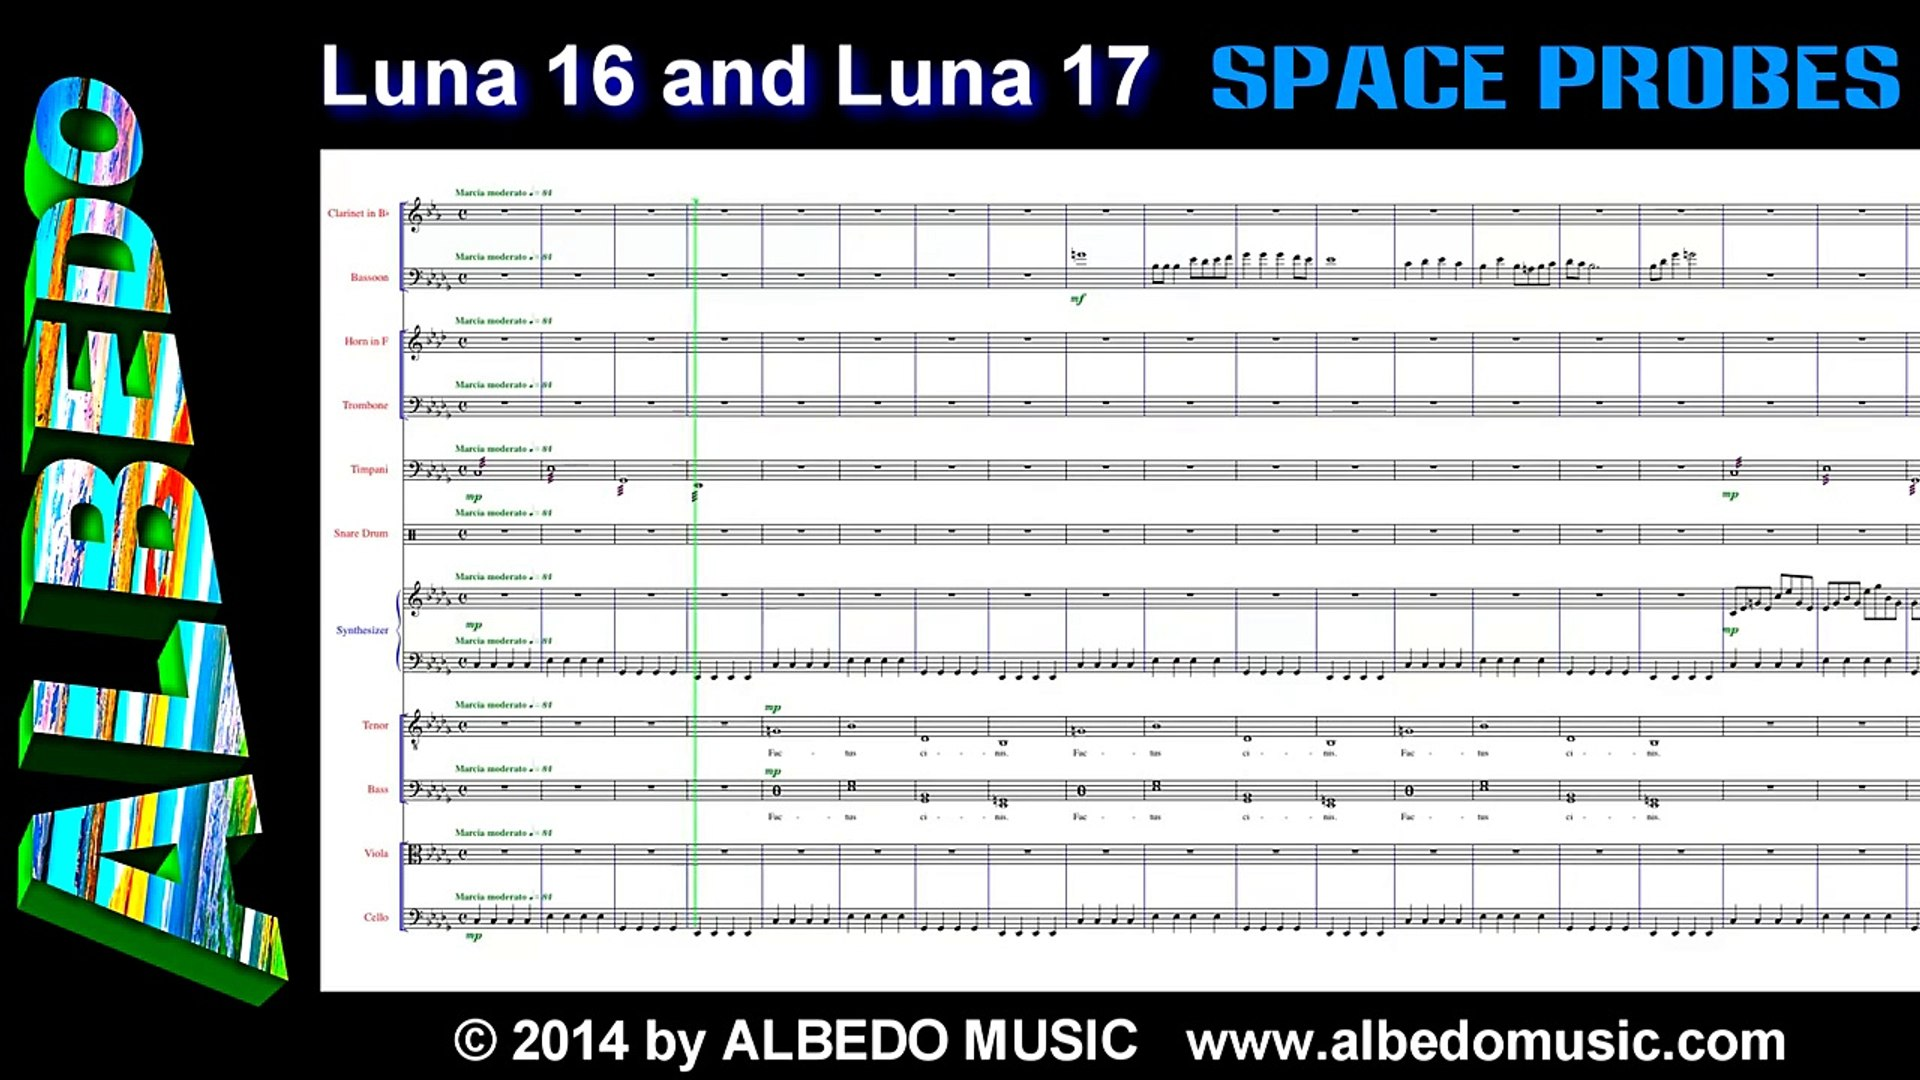 Luna 16 and Luna 17 from Space Probes by ALBEDO. Scrolling Sheet Music. New Age Space Music.